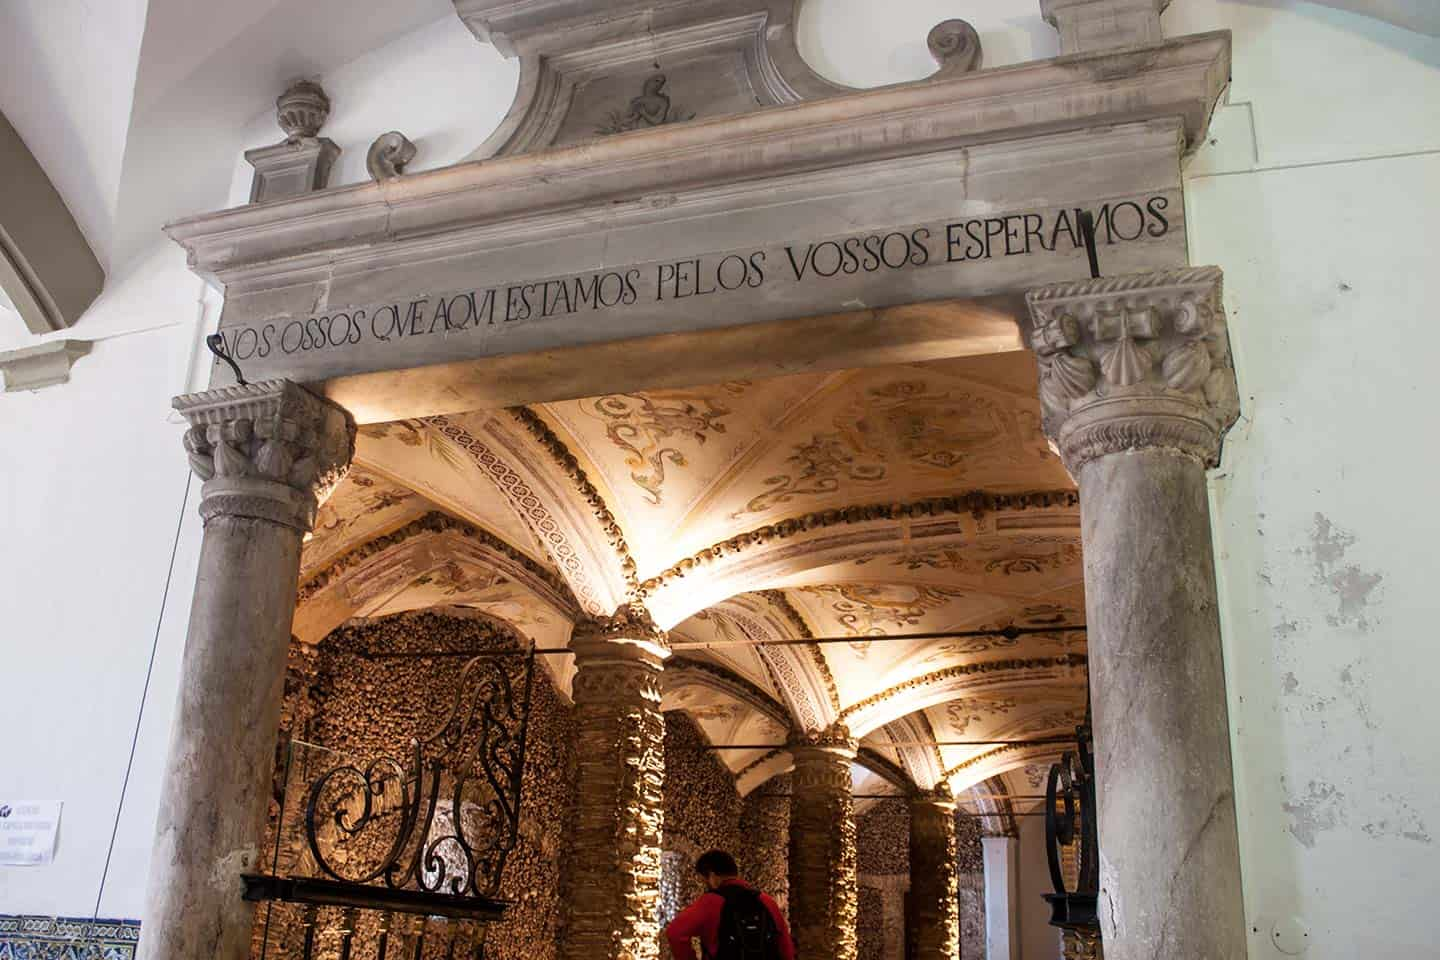 Image of the entrance to the Chapel of Bones in Evora